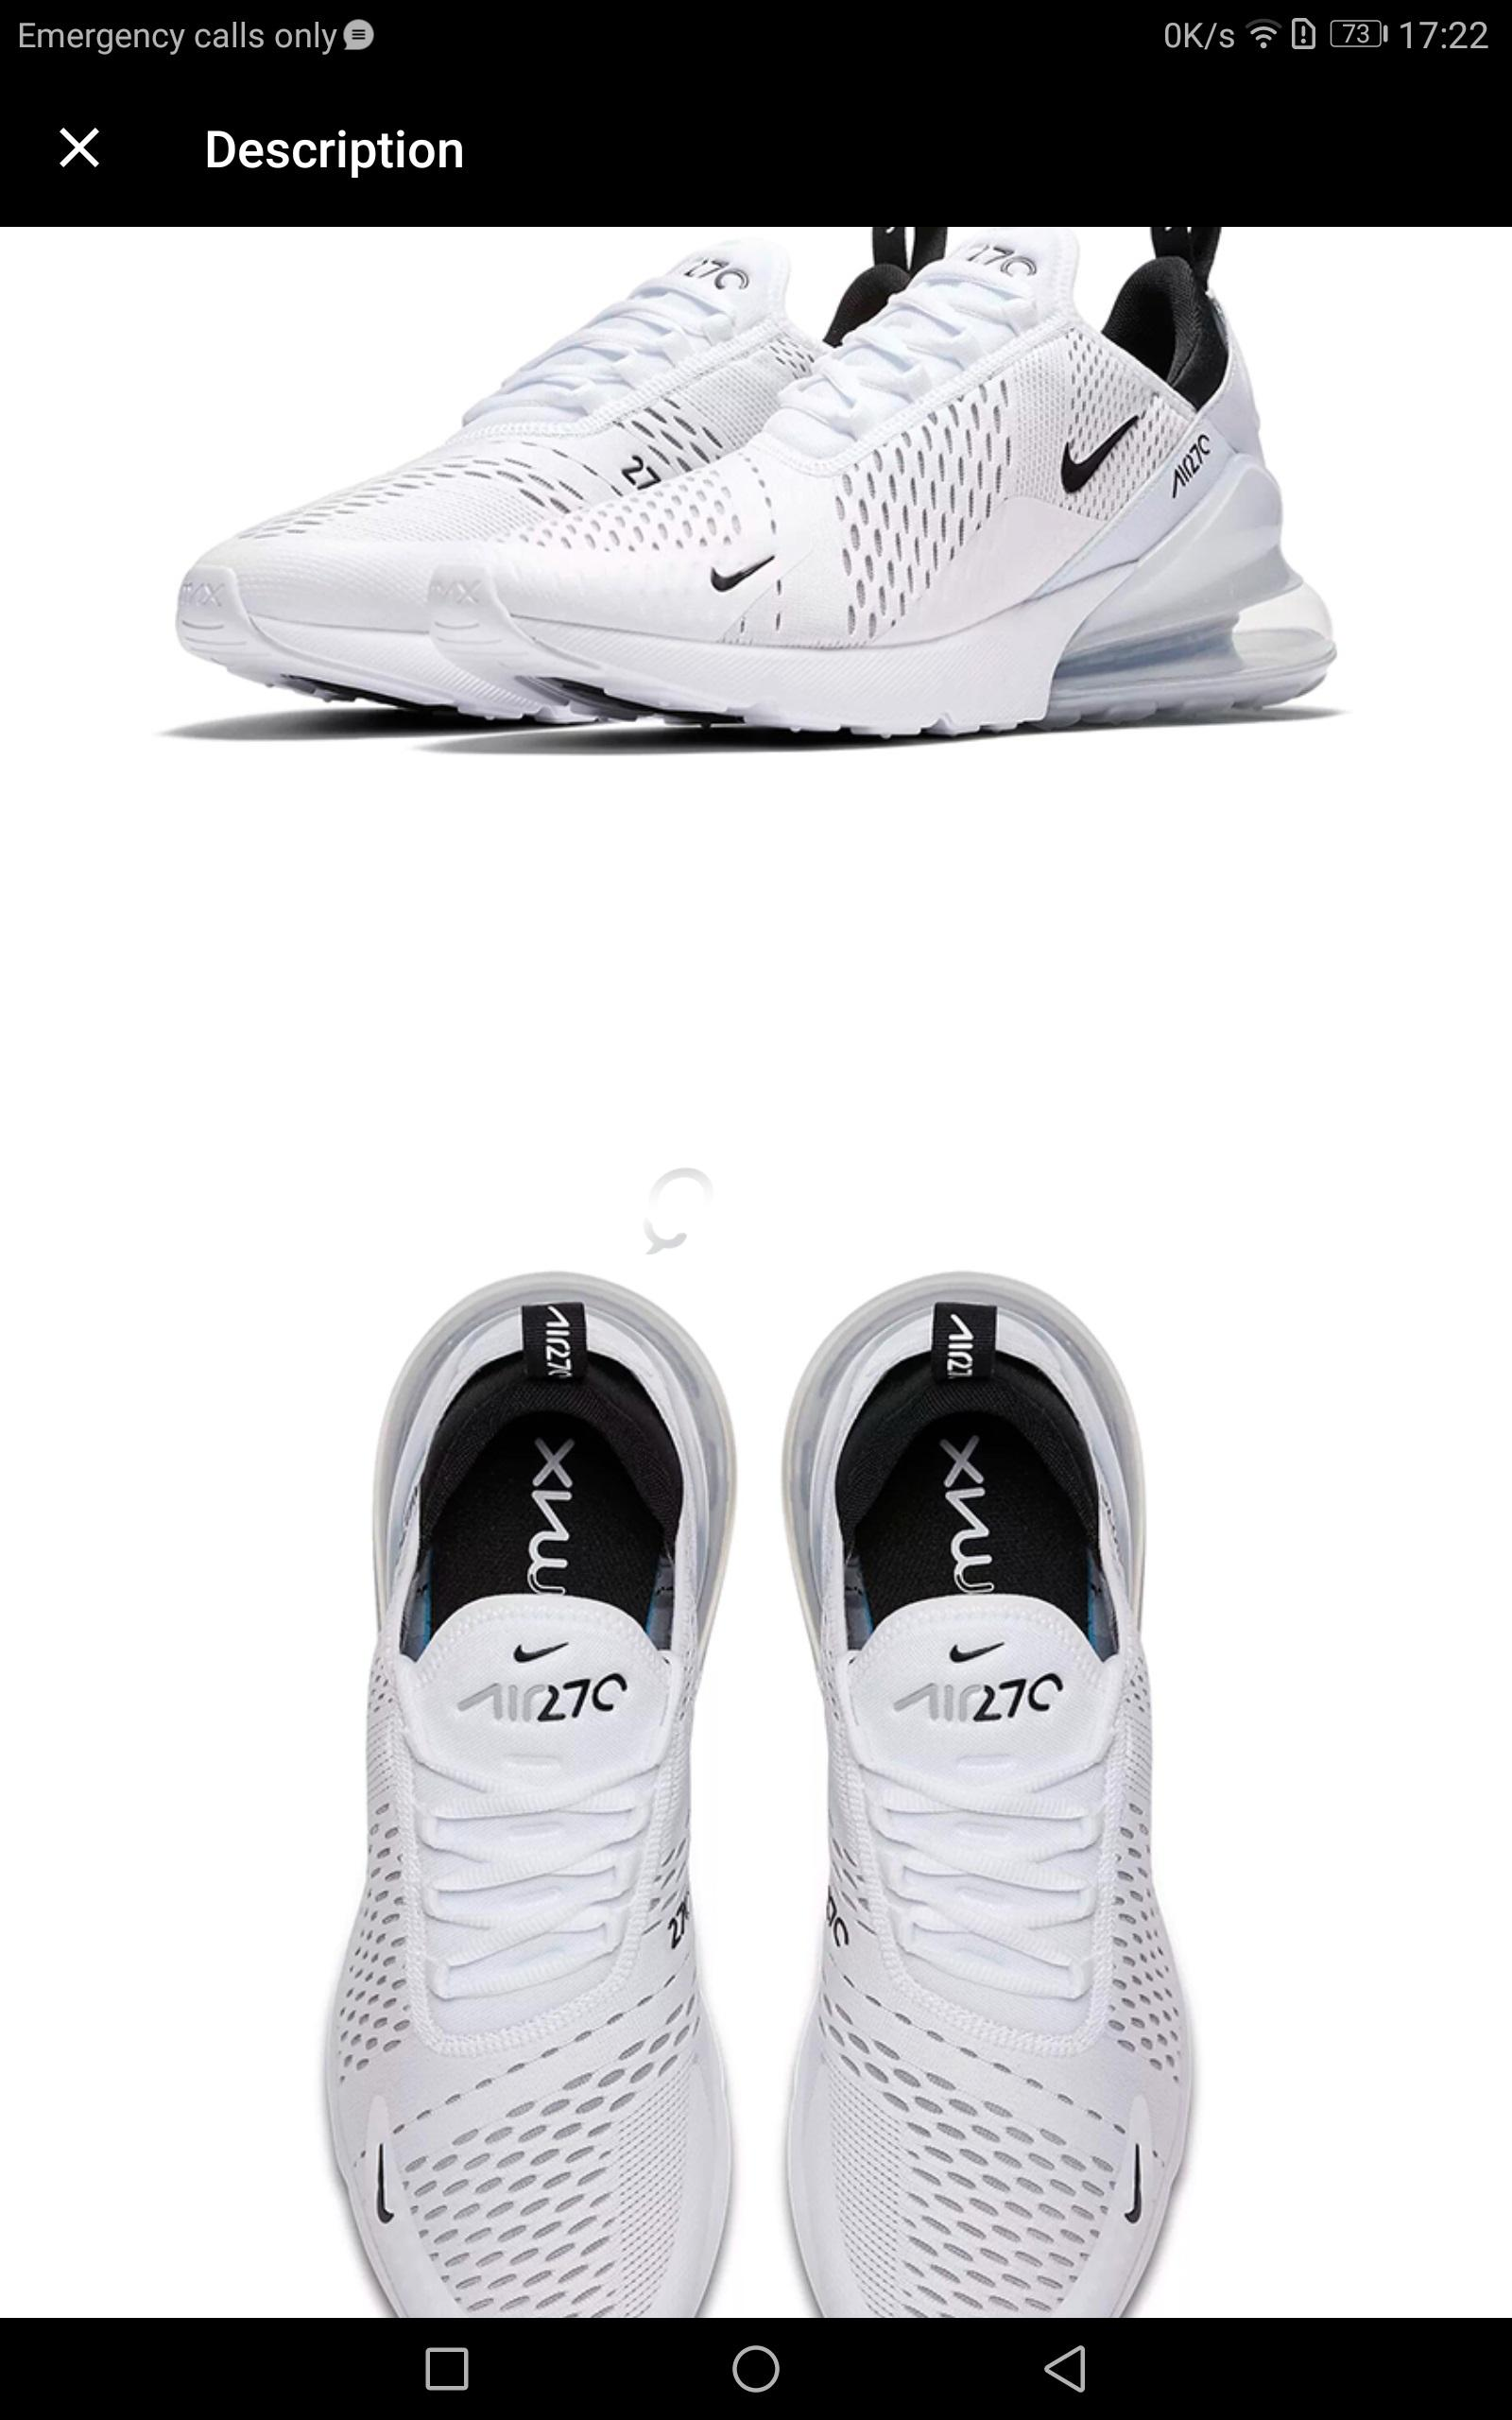 Original Nike Air Max 270 180 Running Shoes Sport Outdoor Sneakers White  Comfortable Breathable Cushioning fo  09e776f77